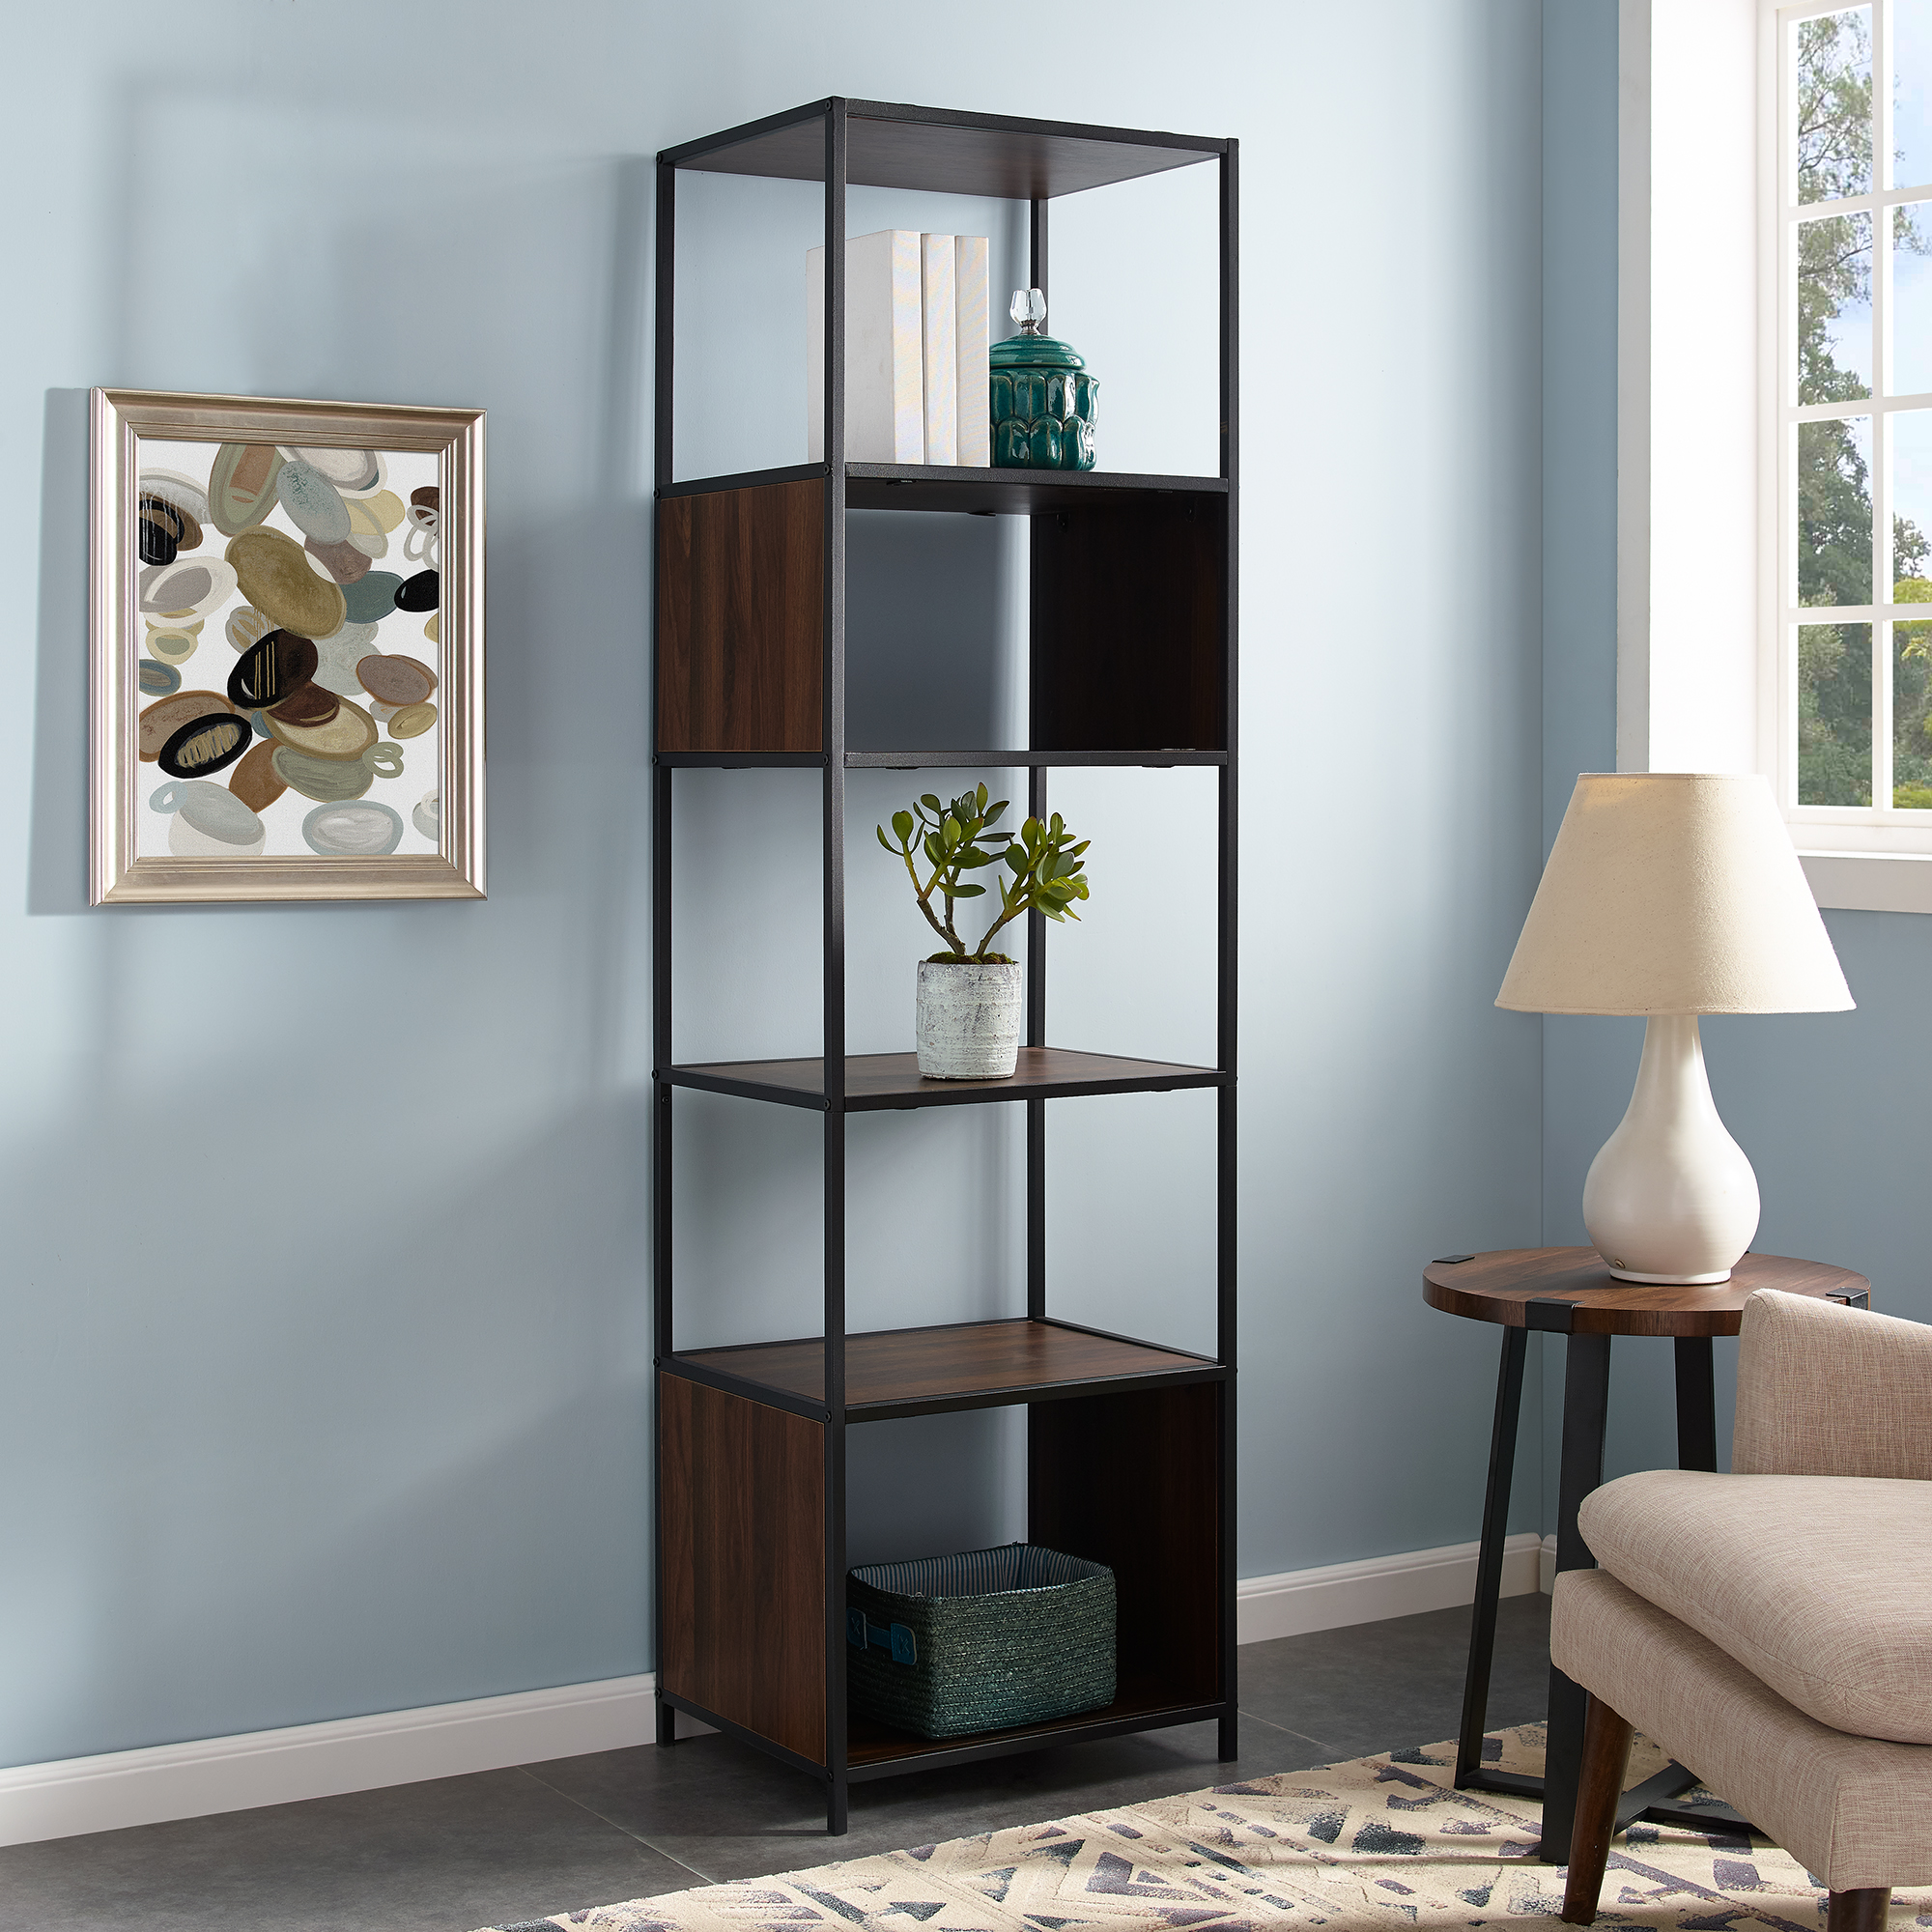 "Manor Park 70"" Urban Industrial Metal and Wood Bookshelf Audio Media Tower - Dark Walnut"